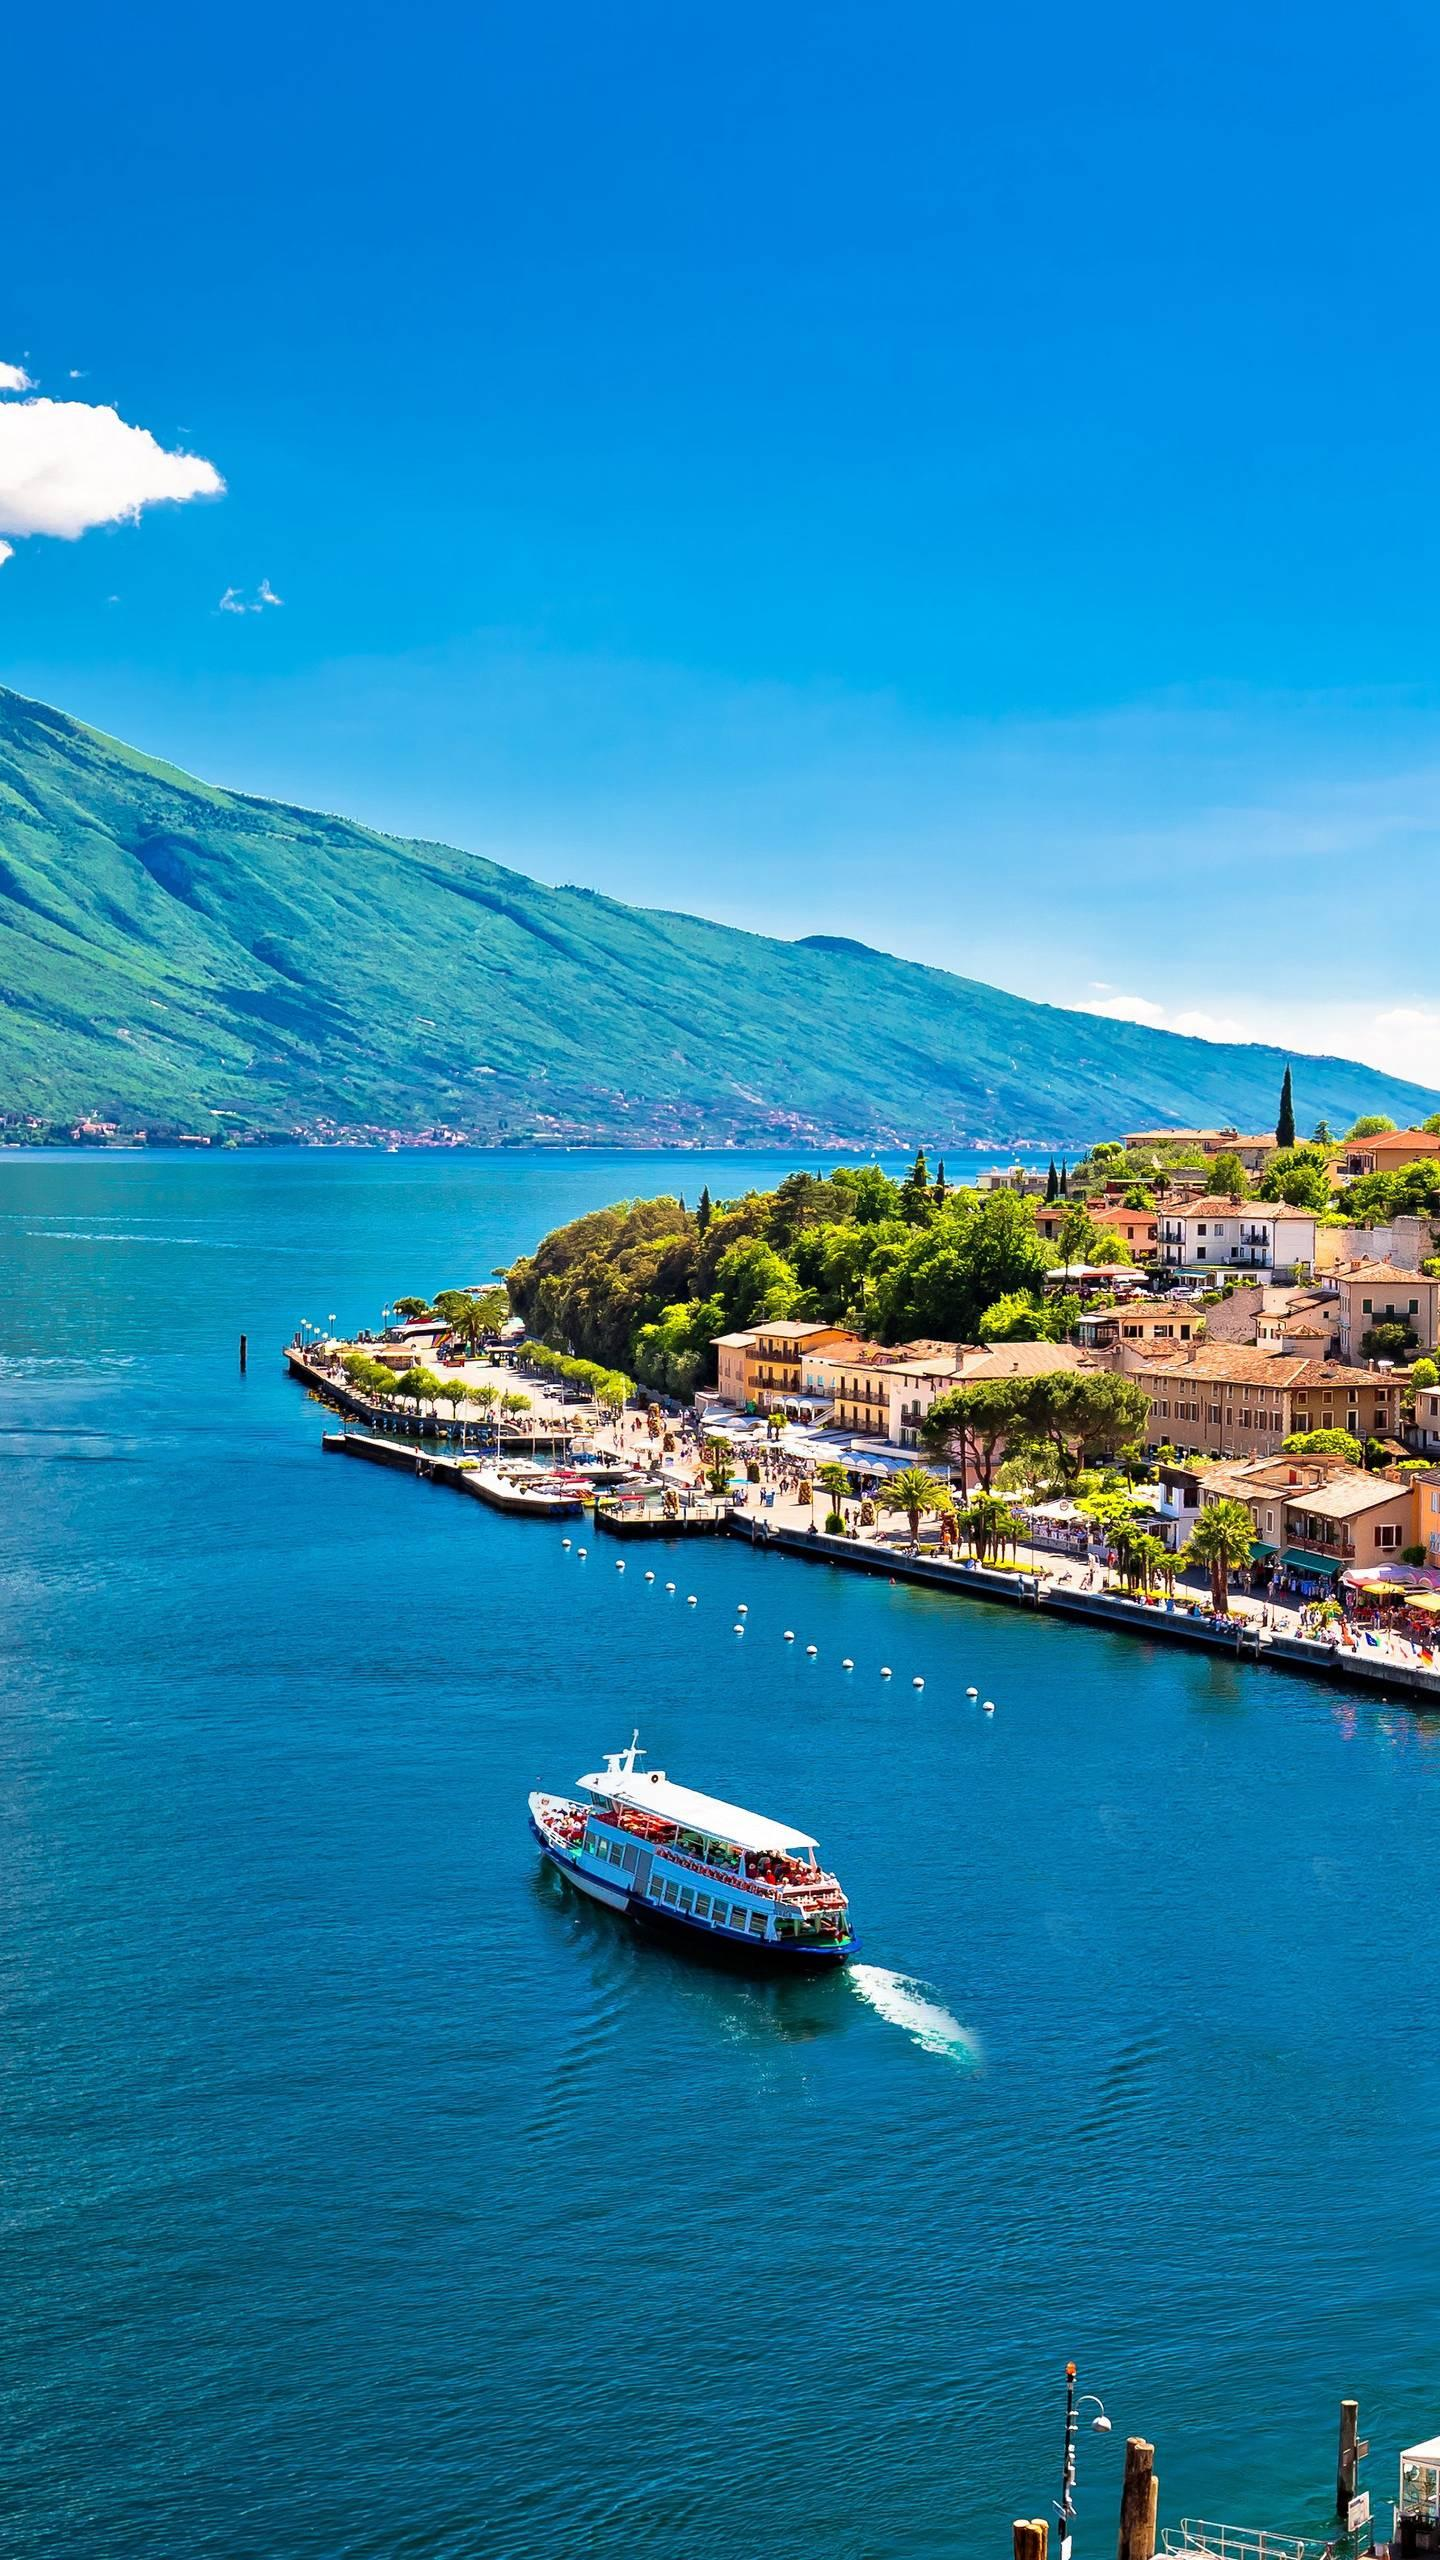 Taste the monumental ruins of Italy, Rome, the golden hills of Tuscany, the romantic waterways of Venice, and Italy is always fascinating.